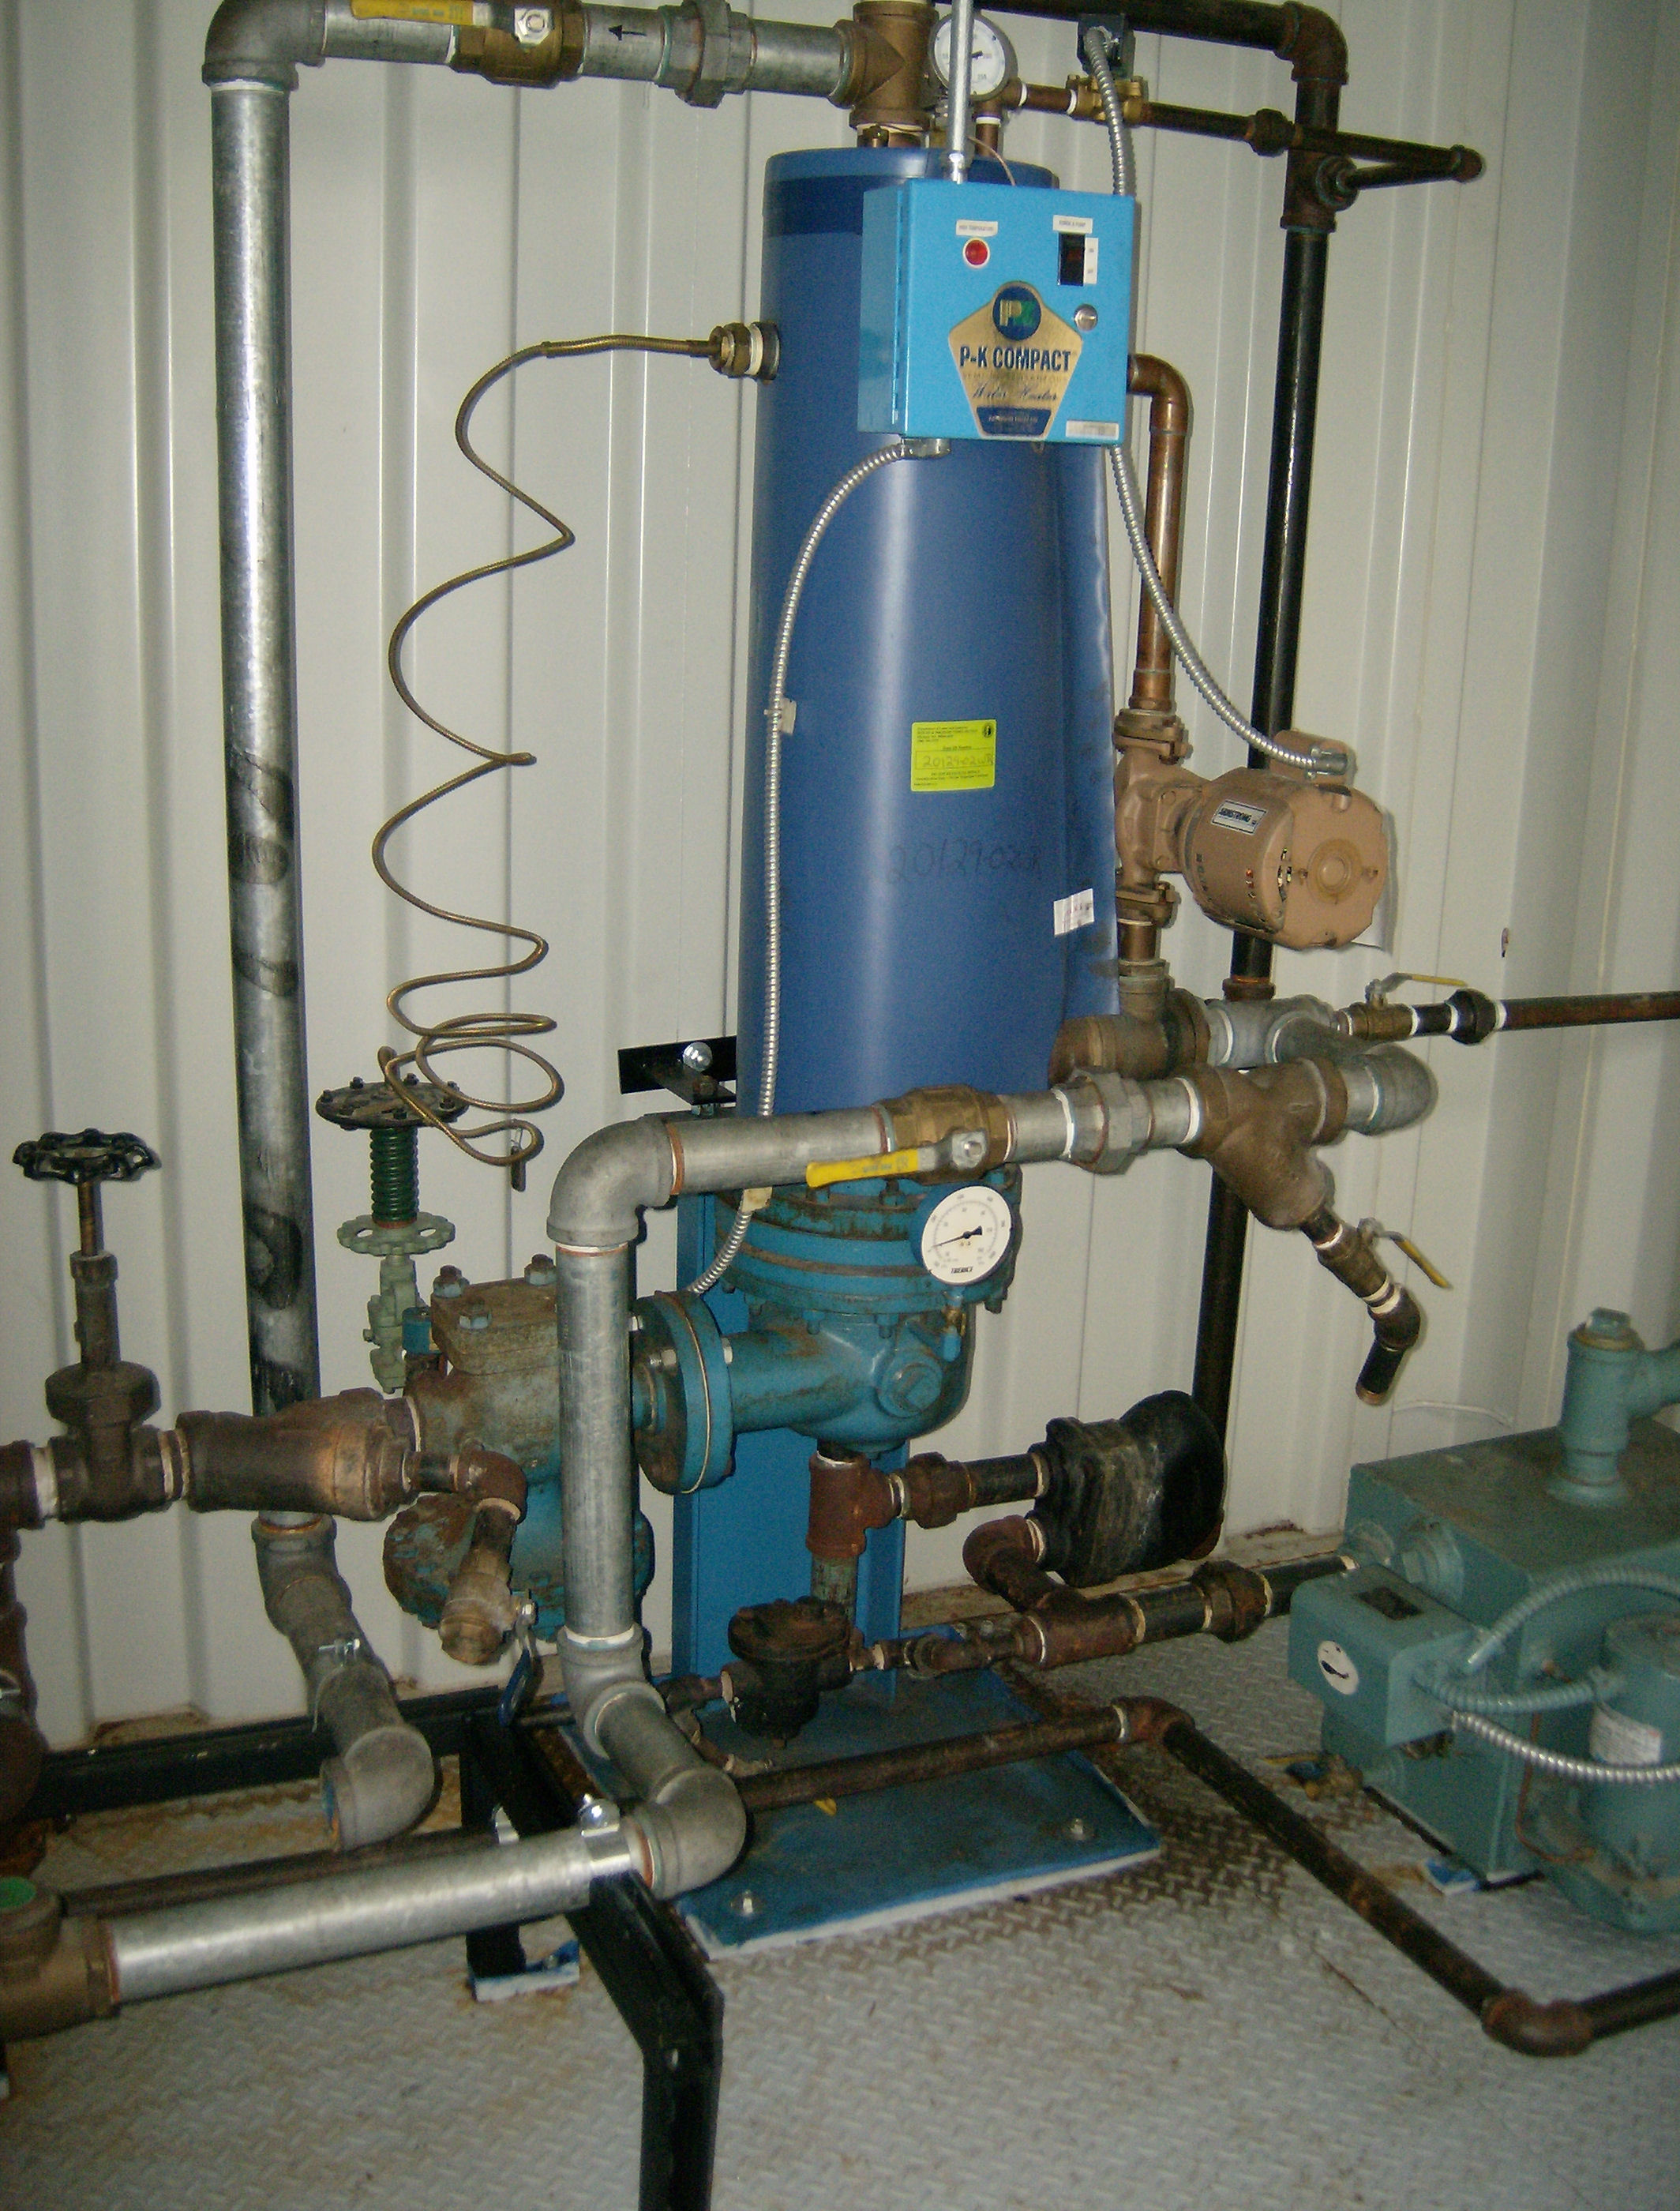 Domestic hot water system